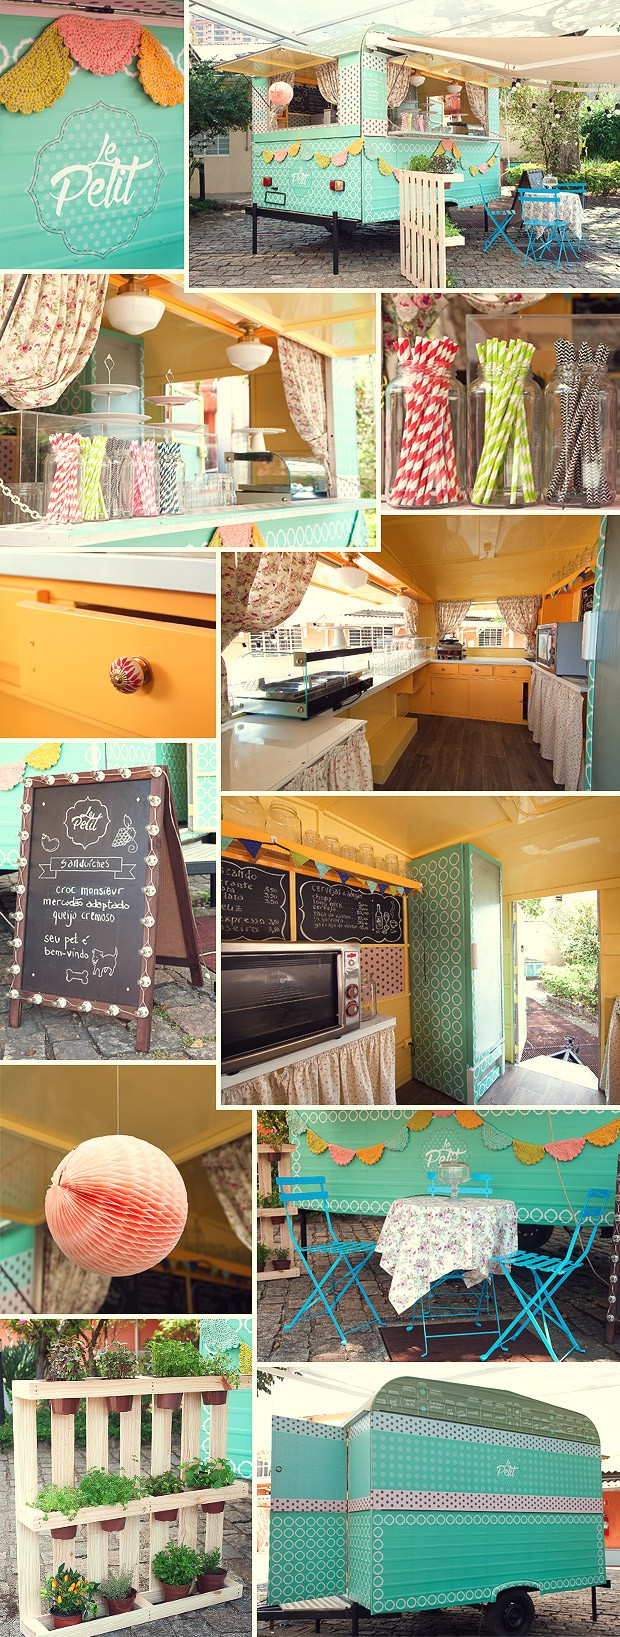 Decora Food Truck (Foto: Felipe Costa)